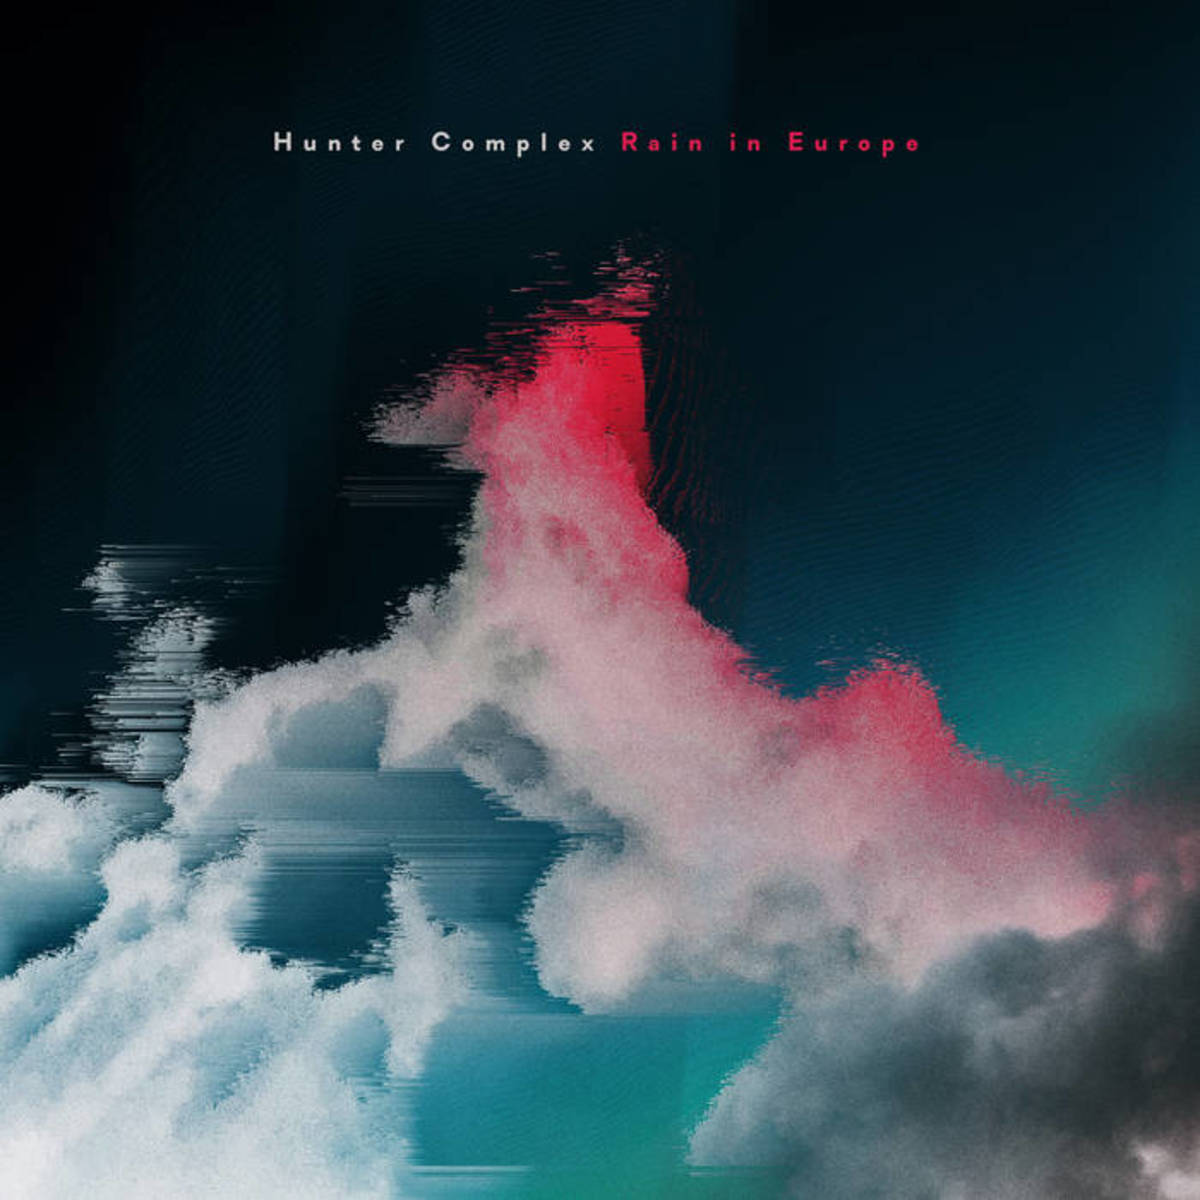 synth-ep-review-rain-in-europe-by-hunter-complex